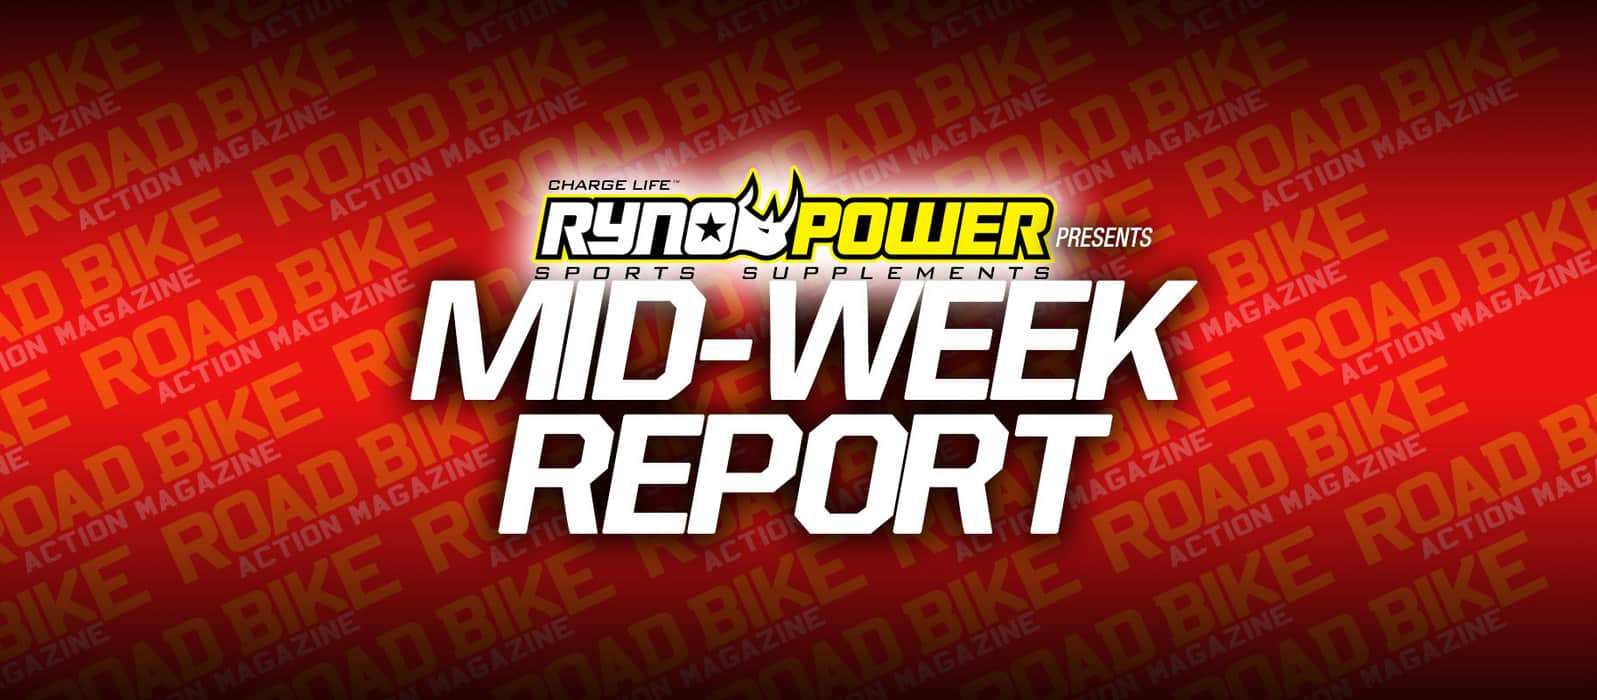 Mid-Week Report The Latest News, Products and Events | Road